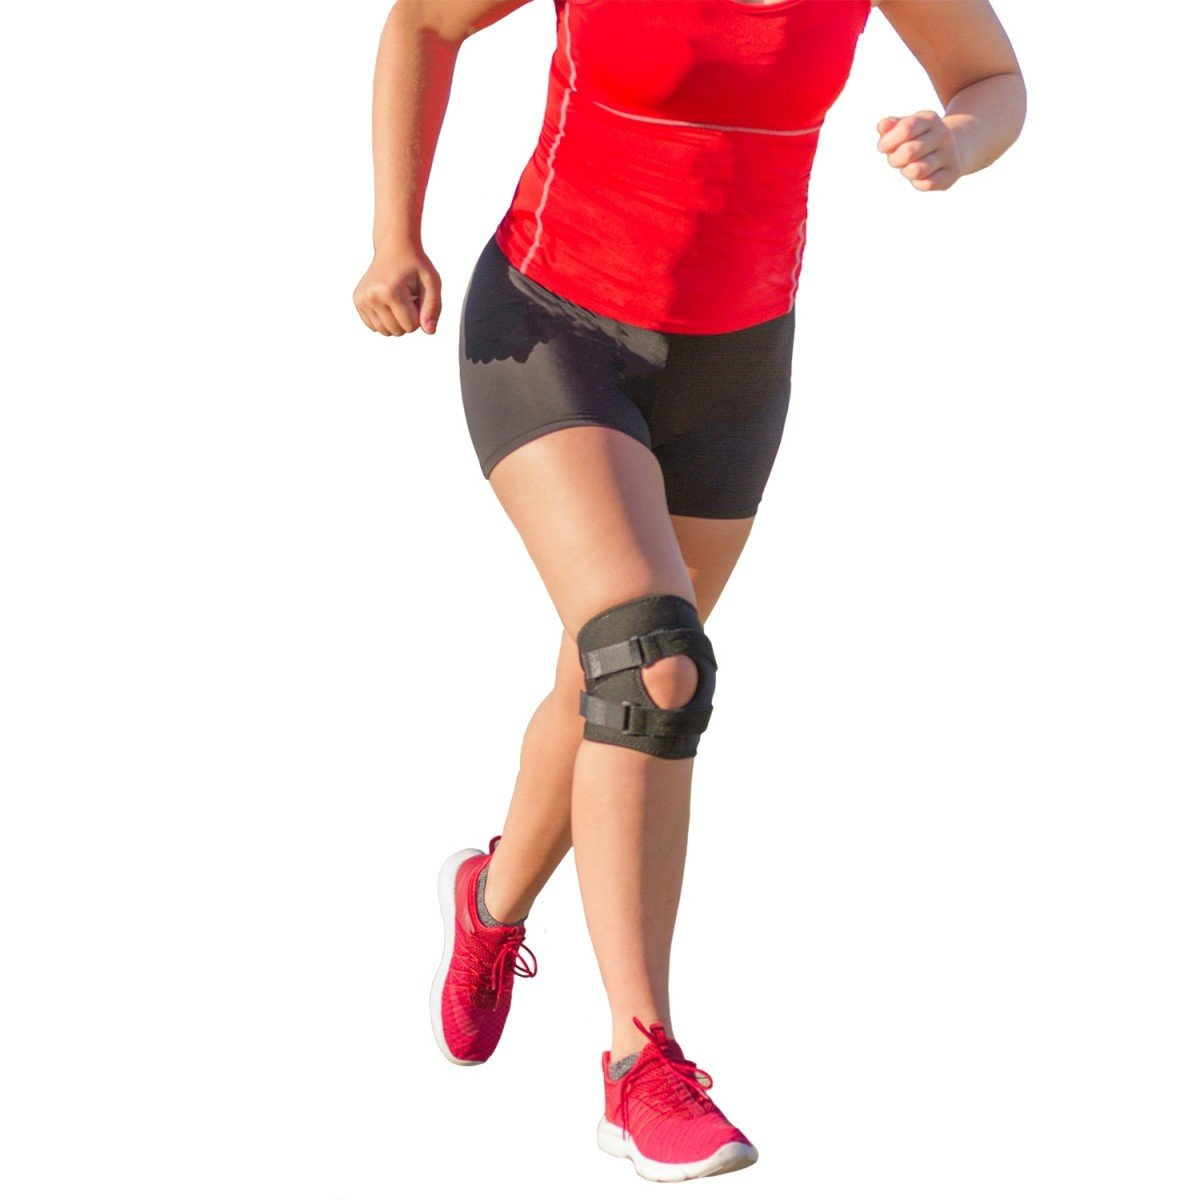 BraceAbility Patellar Tracking Short Knee Brace | Running, Exercise & Basketball Support Sleeve Stabilizer for Post Kneecap Dislocation, Tendonitis, Patellofemoral Pain & MCL/LCL Injuries (Large) by BraceAbility